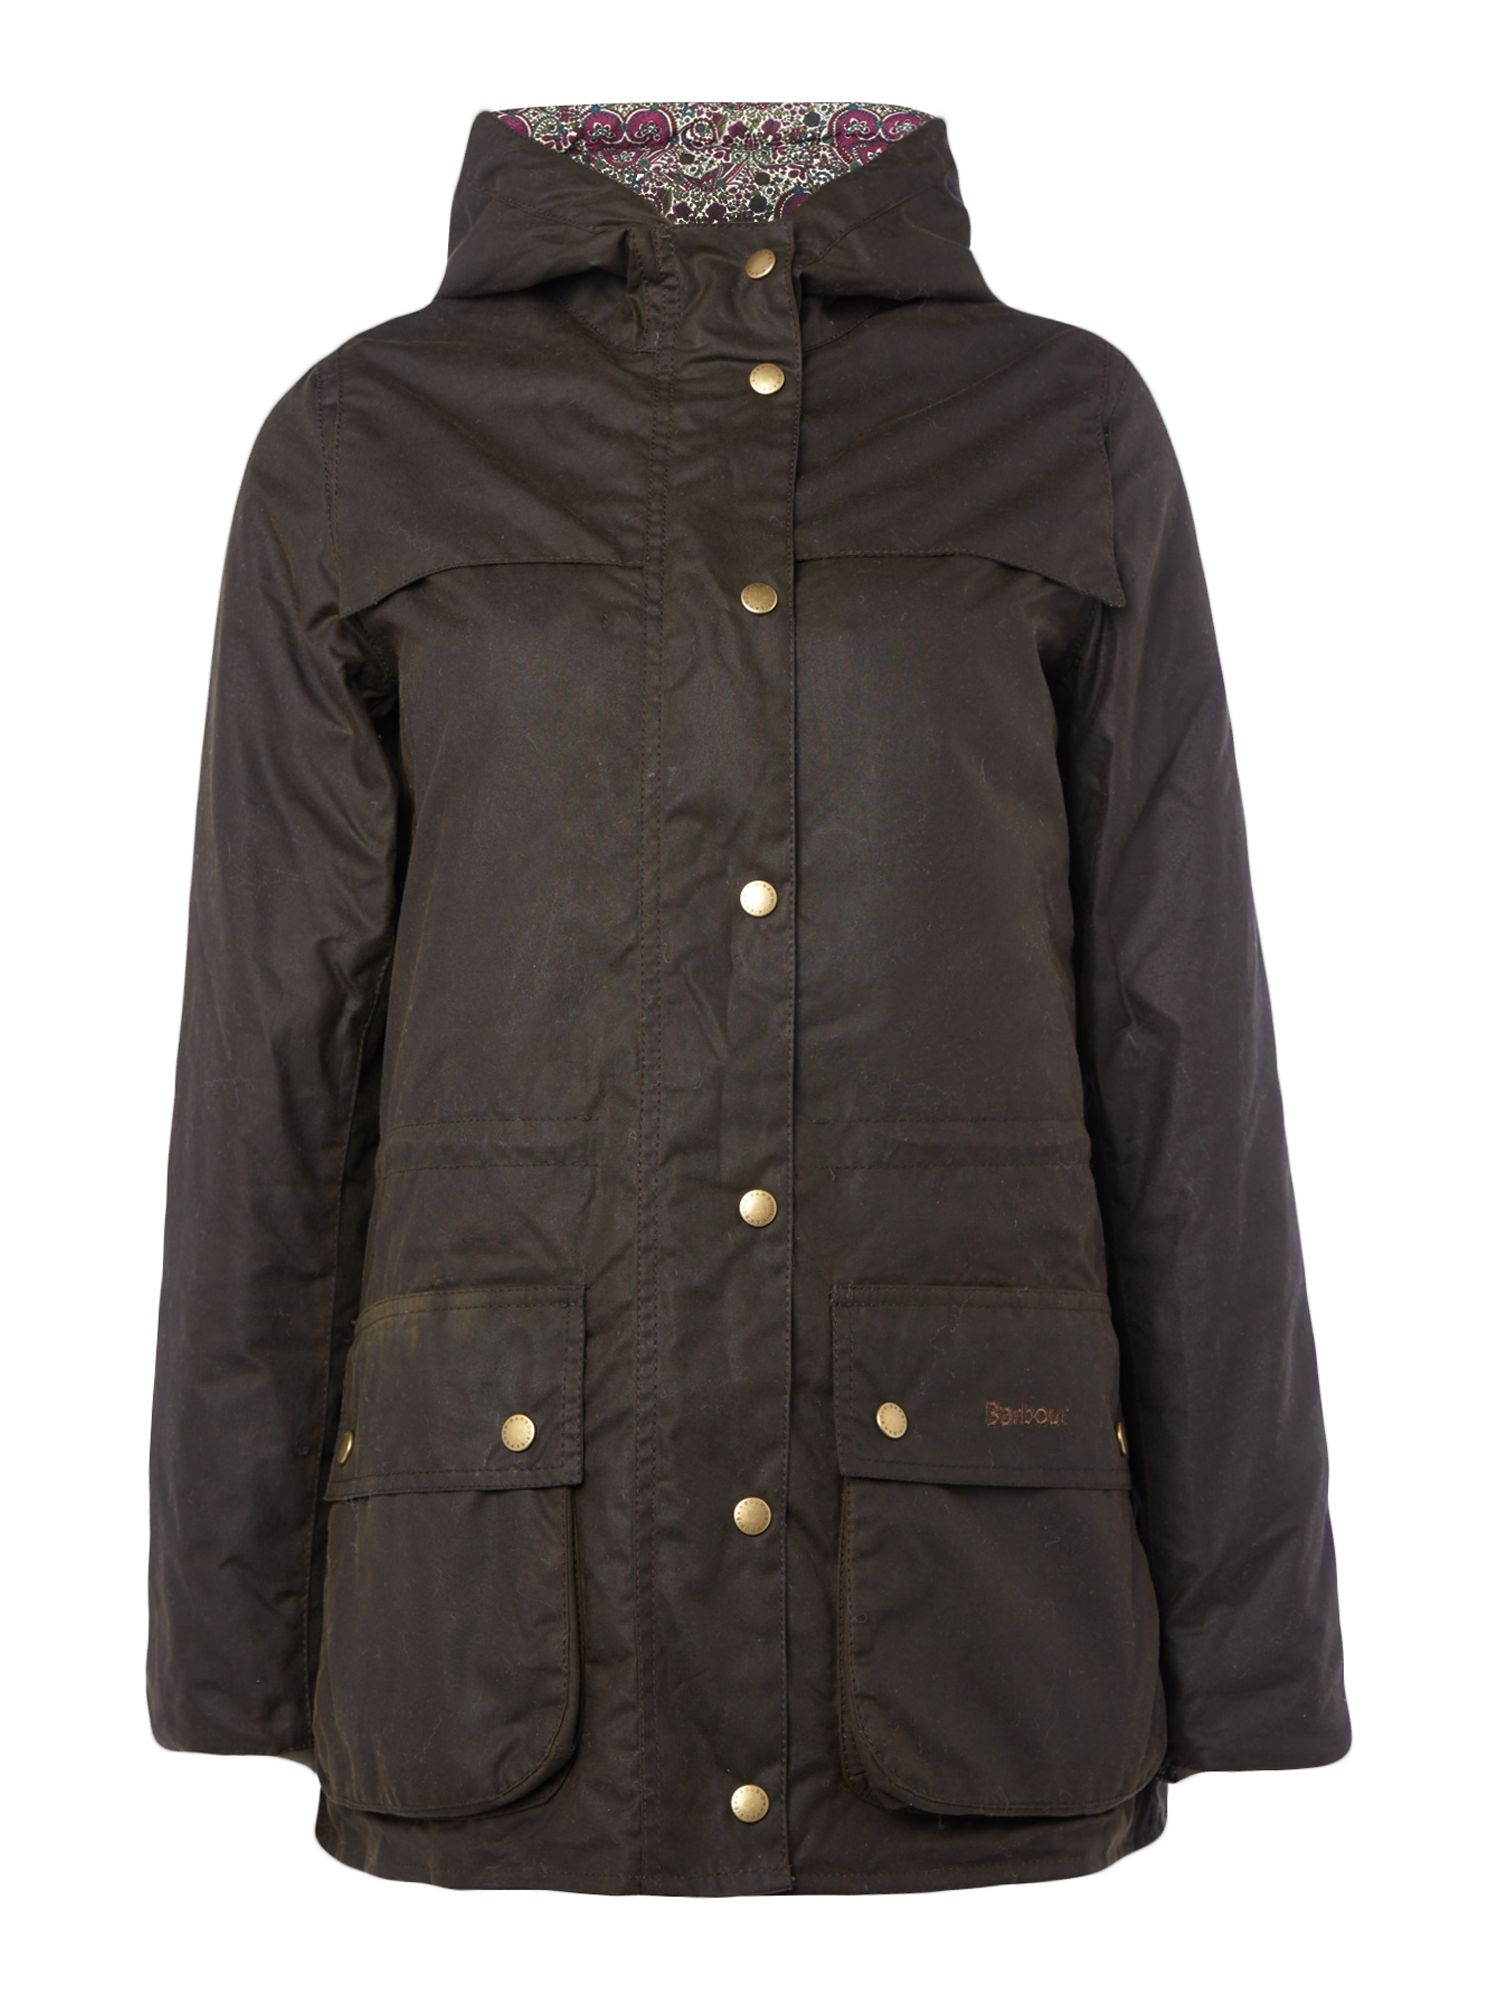 Barbour Blaise Wax Jacket With Liberty Kitty Grace Lining, Olive